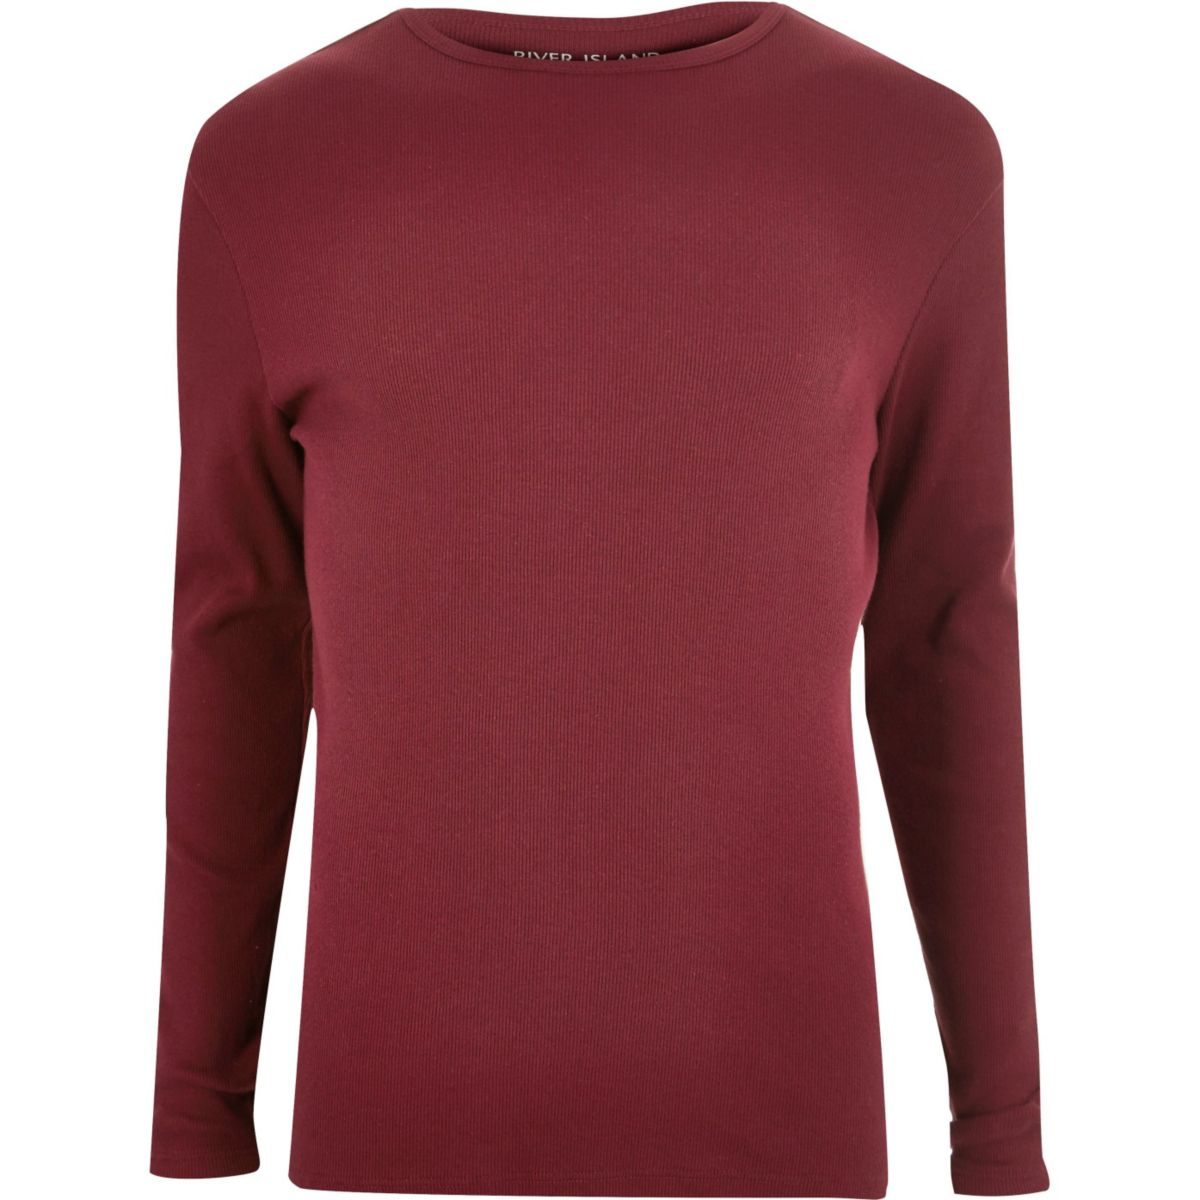 Red ribbed slim fit long sleeve T-shirt